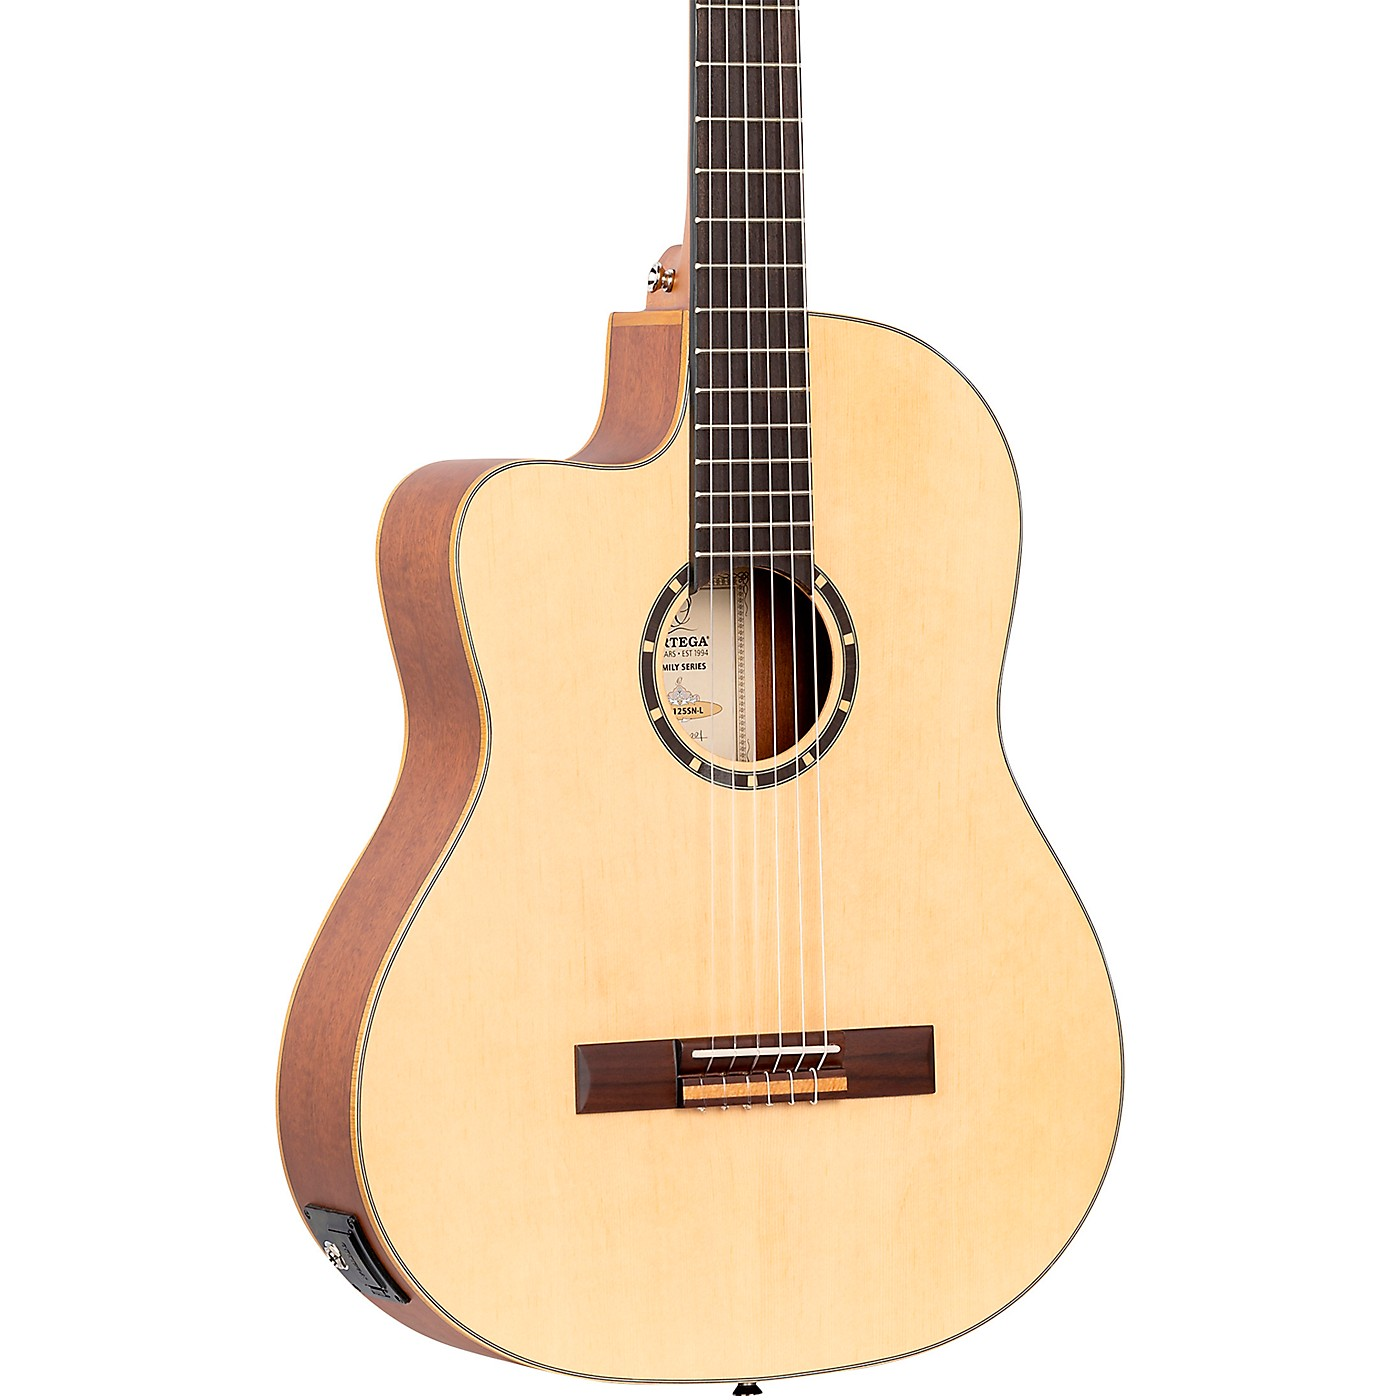 Ortega Family Series RCE125SN-L Thinline Acoustic/Electric Classical Guitar thumbnail